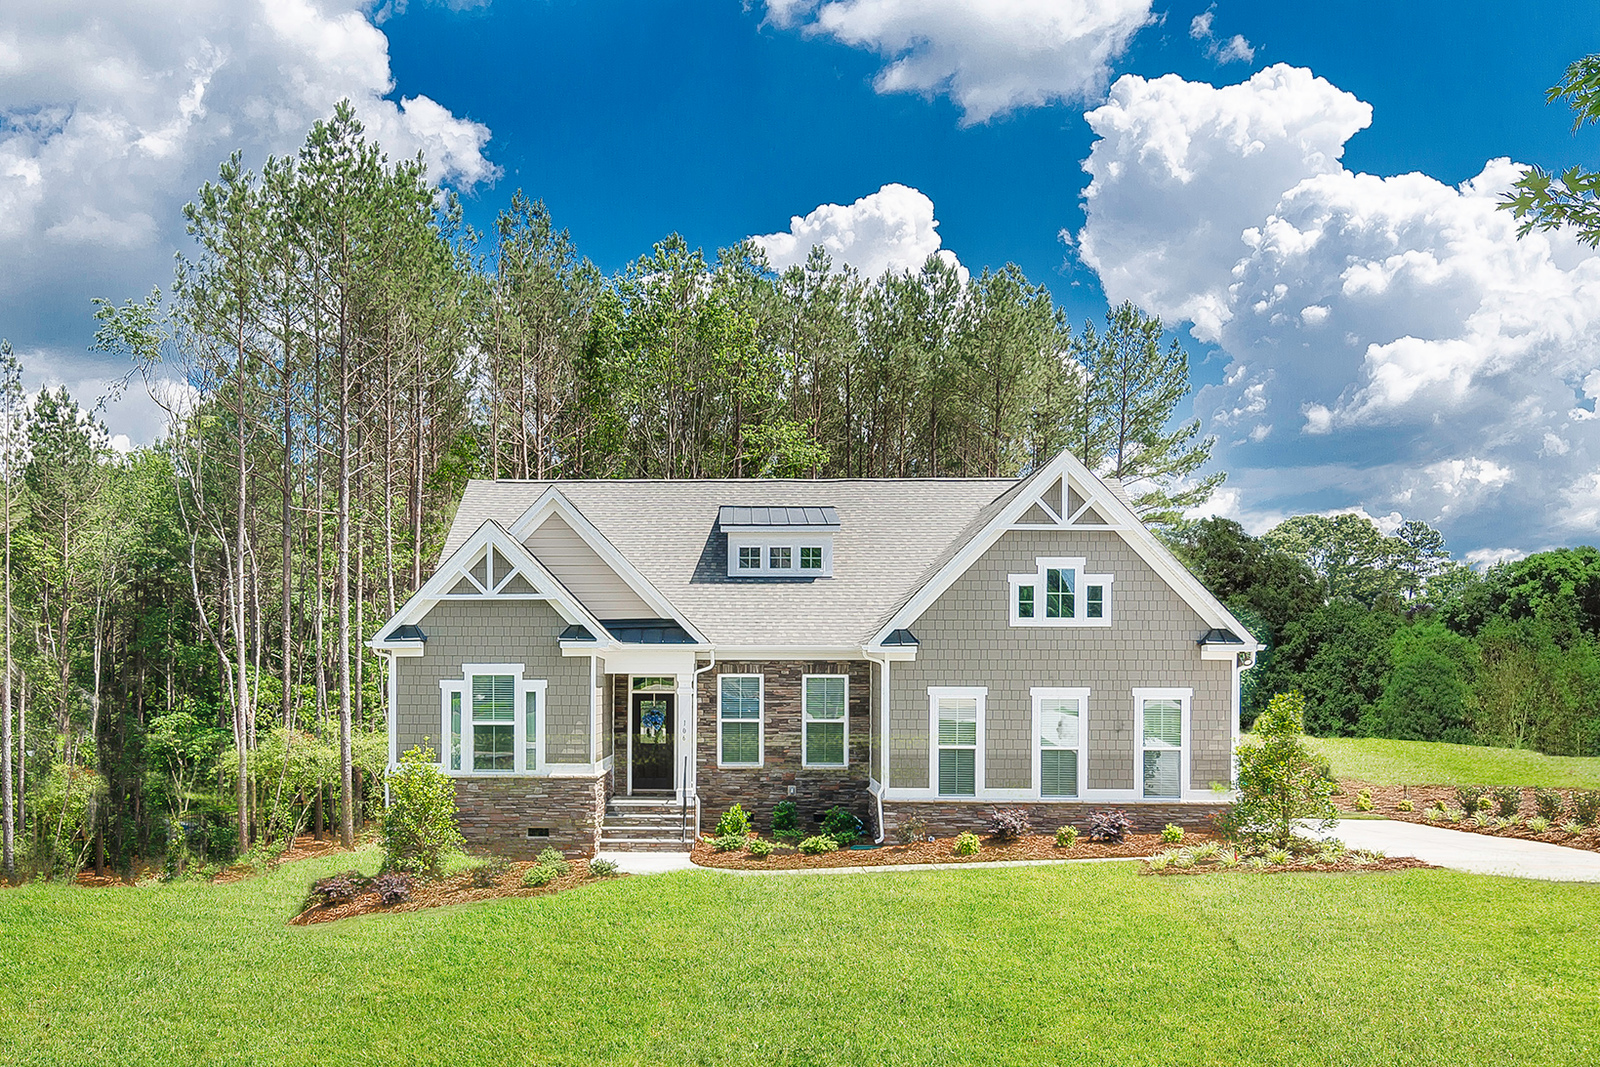 New winterbrook home model for sale at carronbridge in for Builders in south carolina